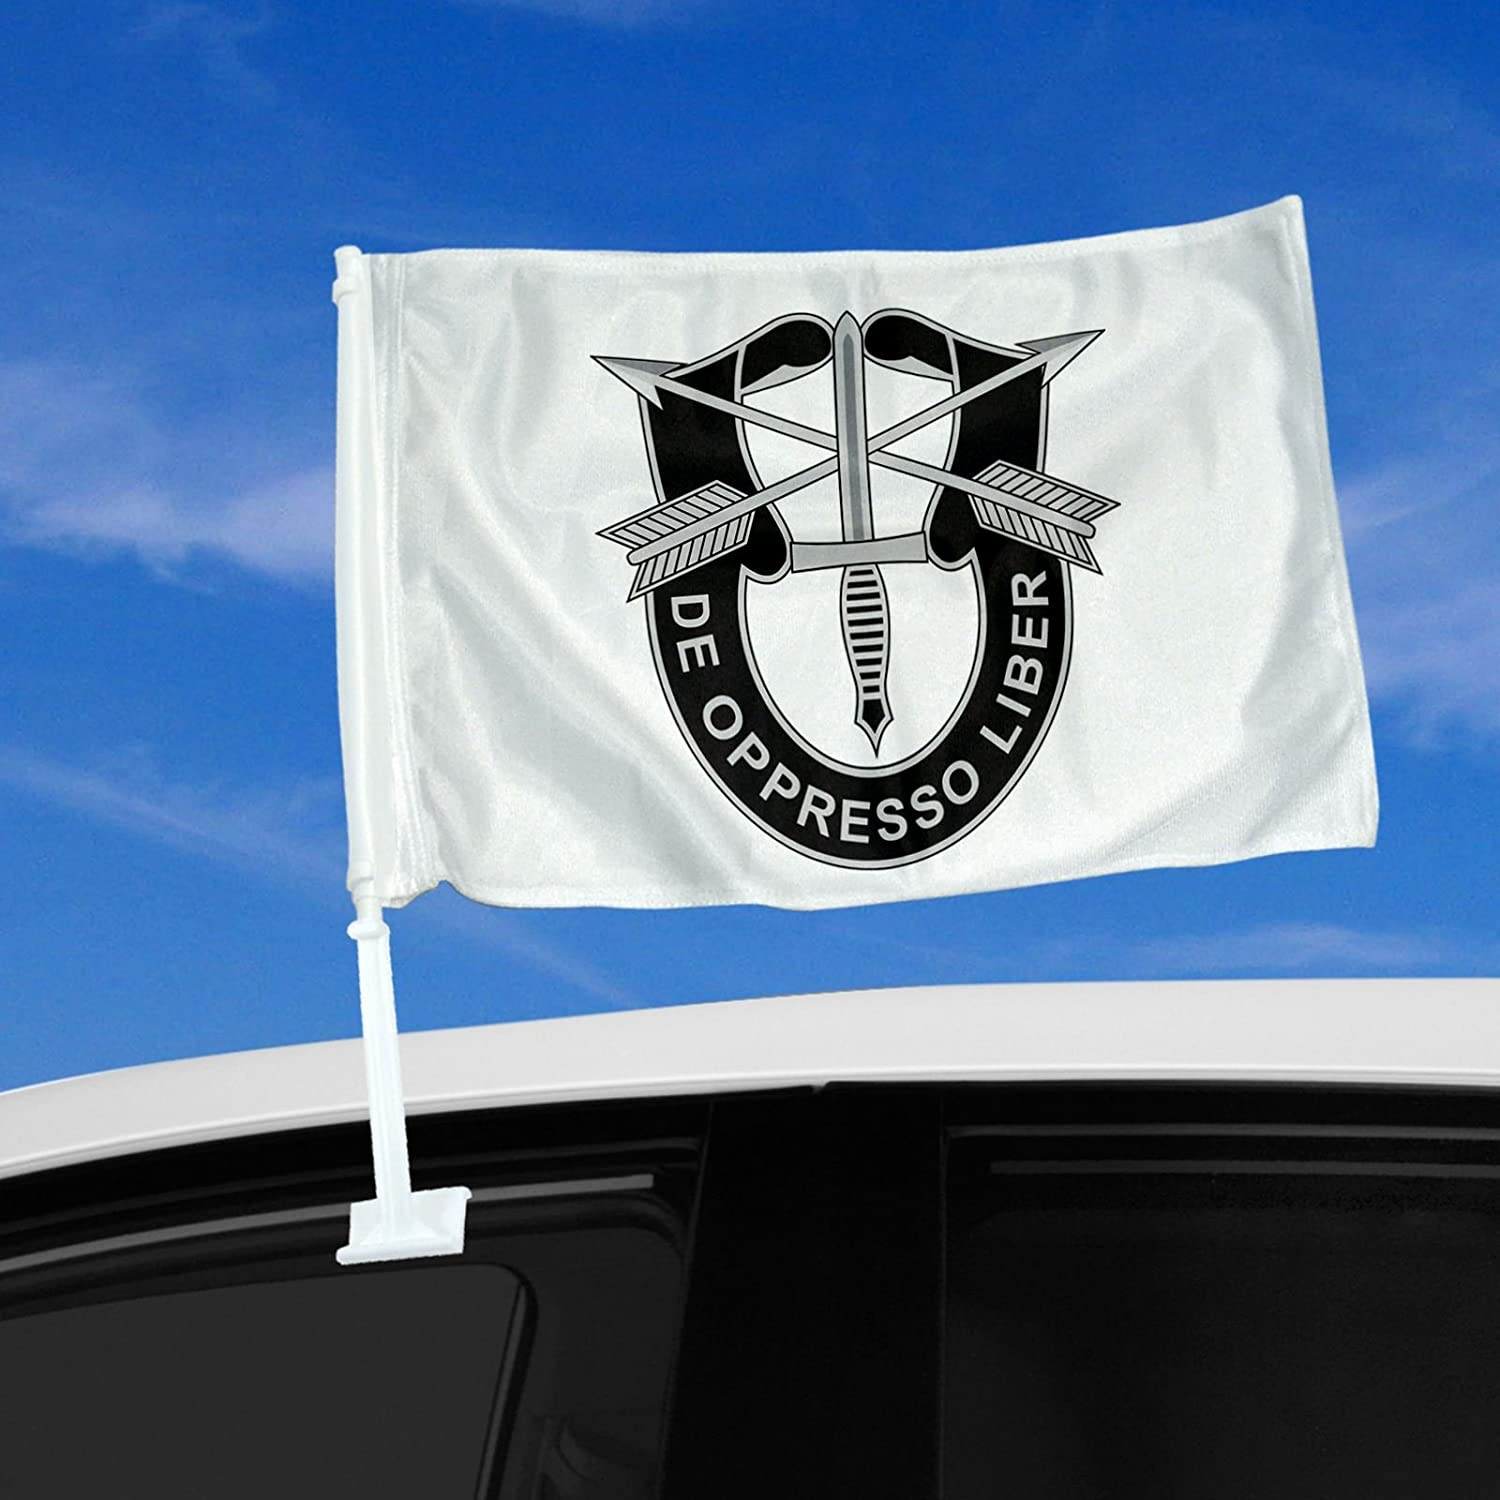 Double Sided Car Flag - 12 x 15 U.S. Army Special Forces - Design Options - Durable and long lasting ExpressItBest